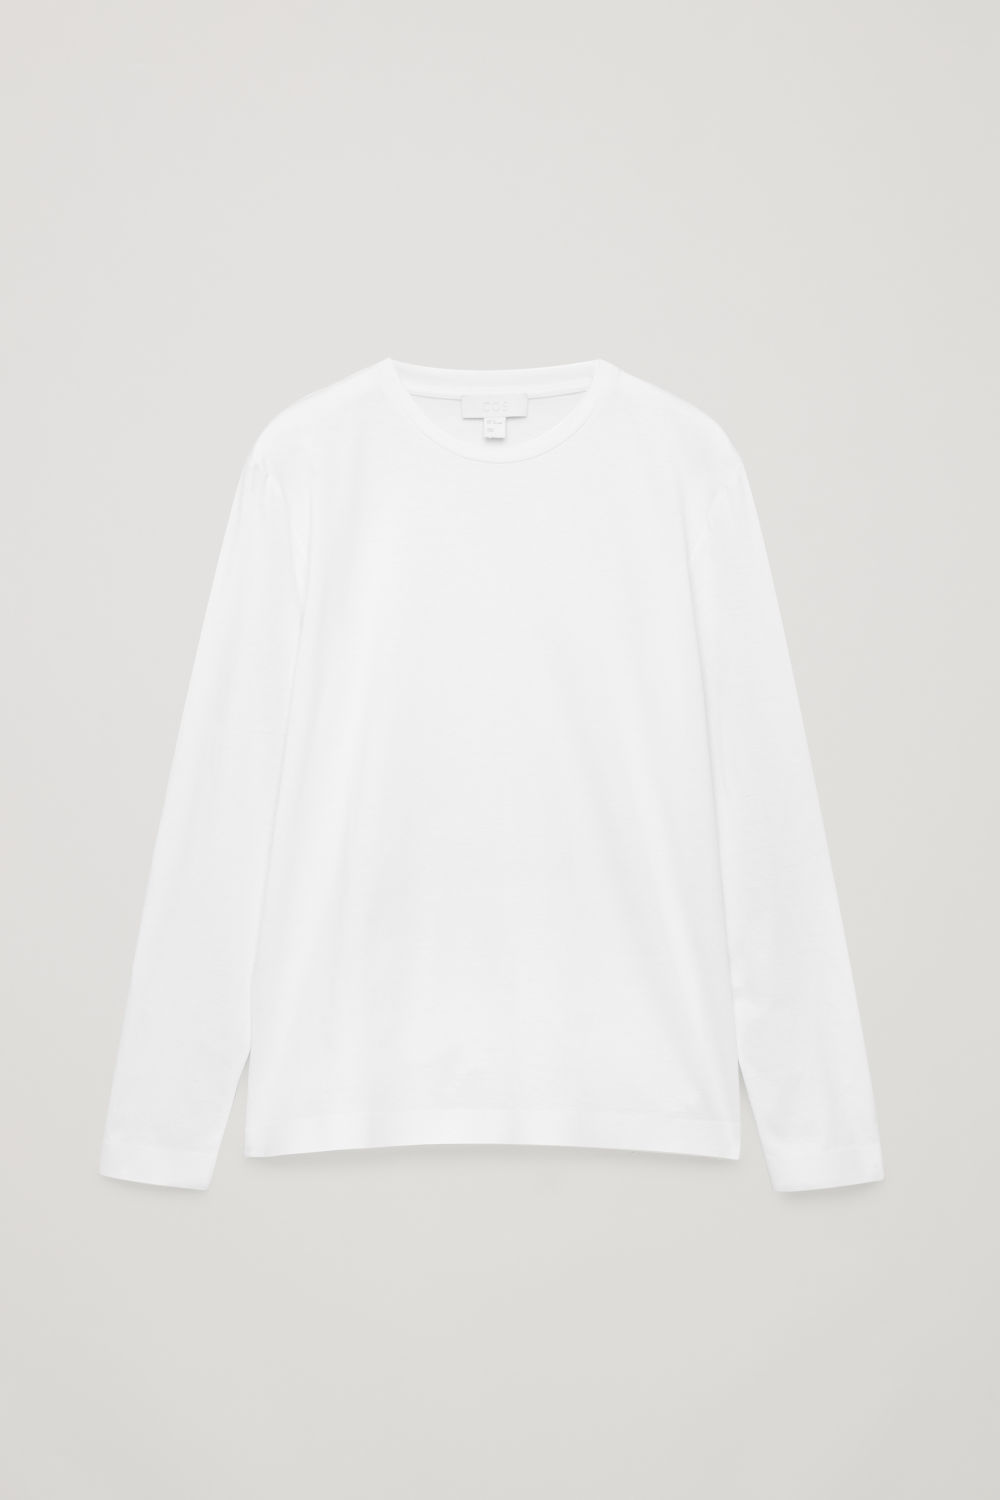 BONDED LONG-SLEEVED TOP